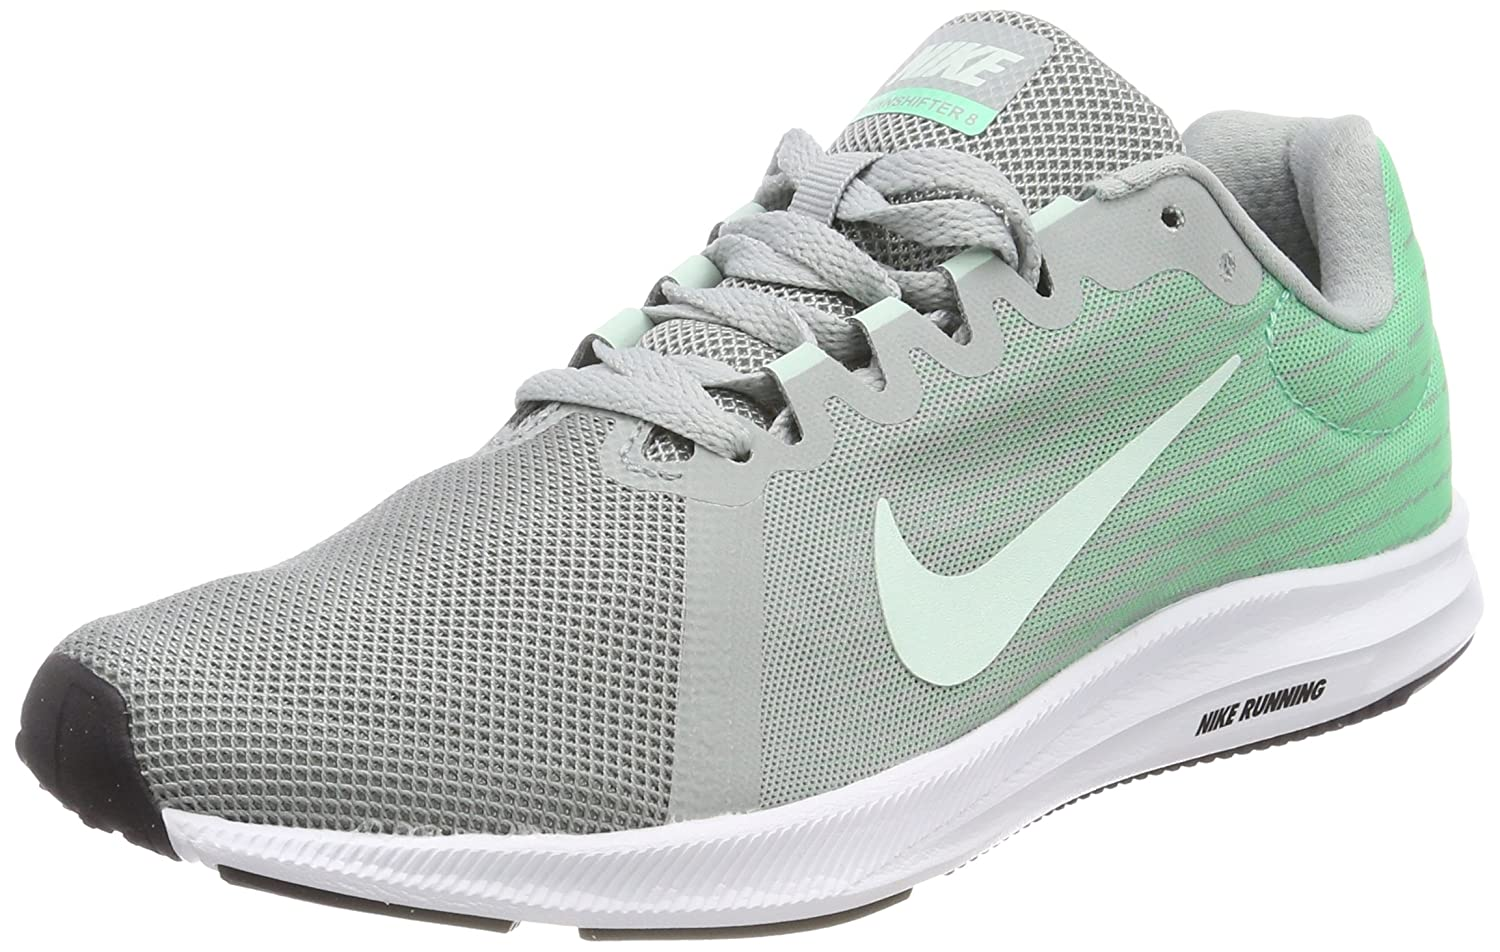 NIKE Women's Downshifter 8 Running Shoe B0761XRZWL 8 B(M) US|Light Pumice/Igloo/Green Glow/White